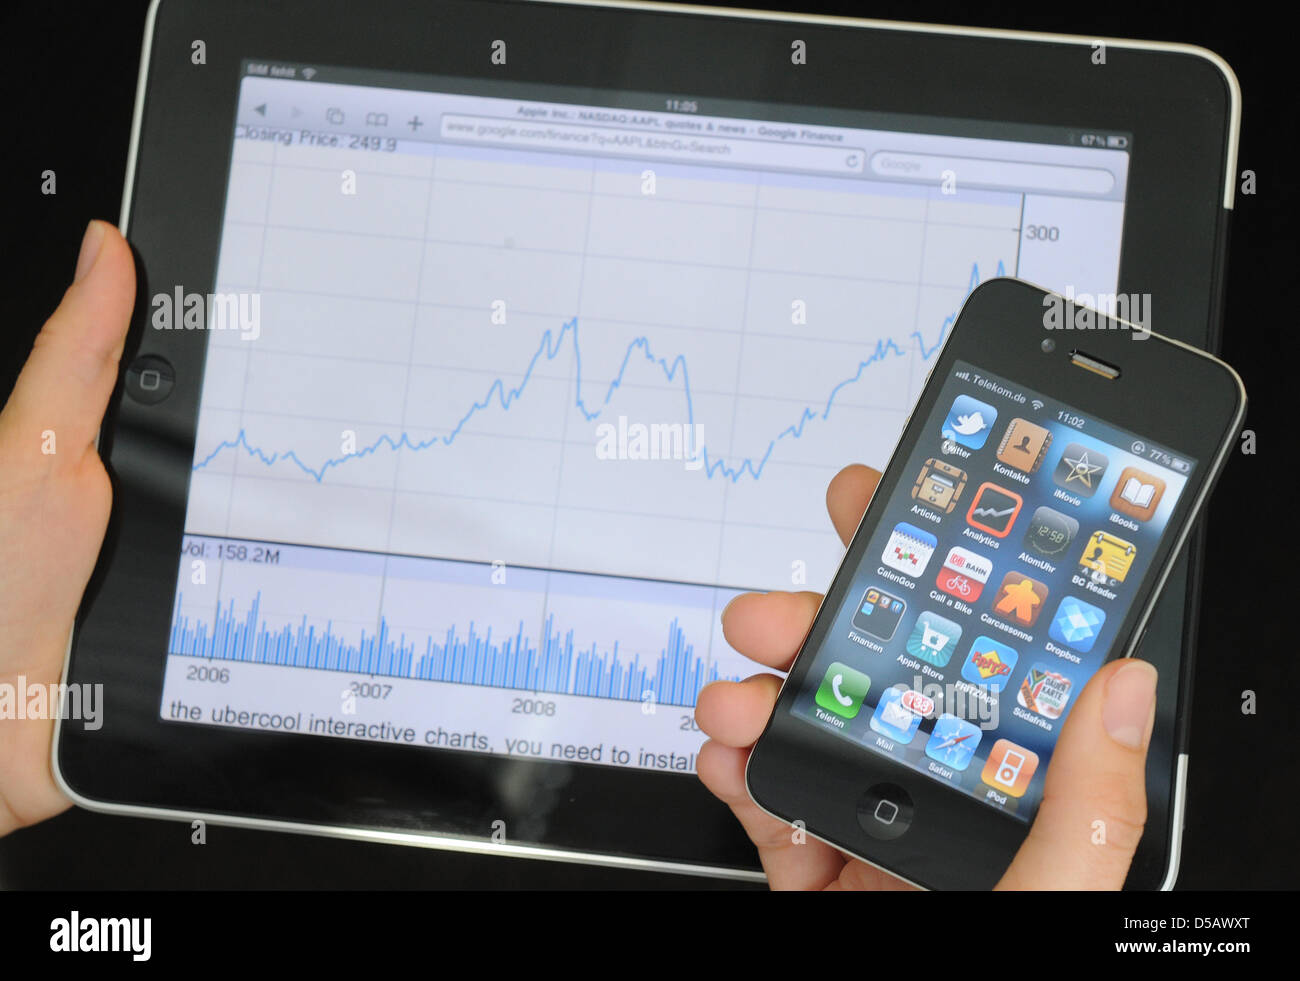 An Apple iPhone of the 4th generation is featured before the graph of the Apple share displayed on the screen of Stock Photo